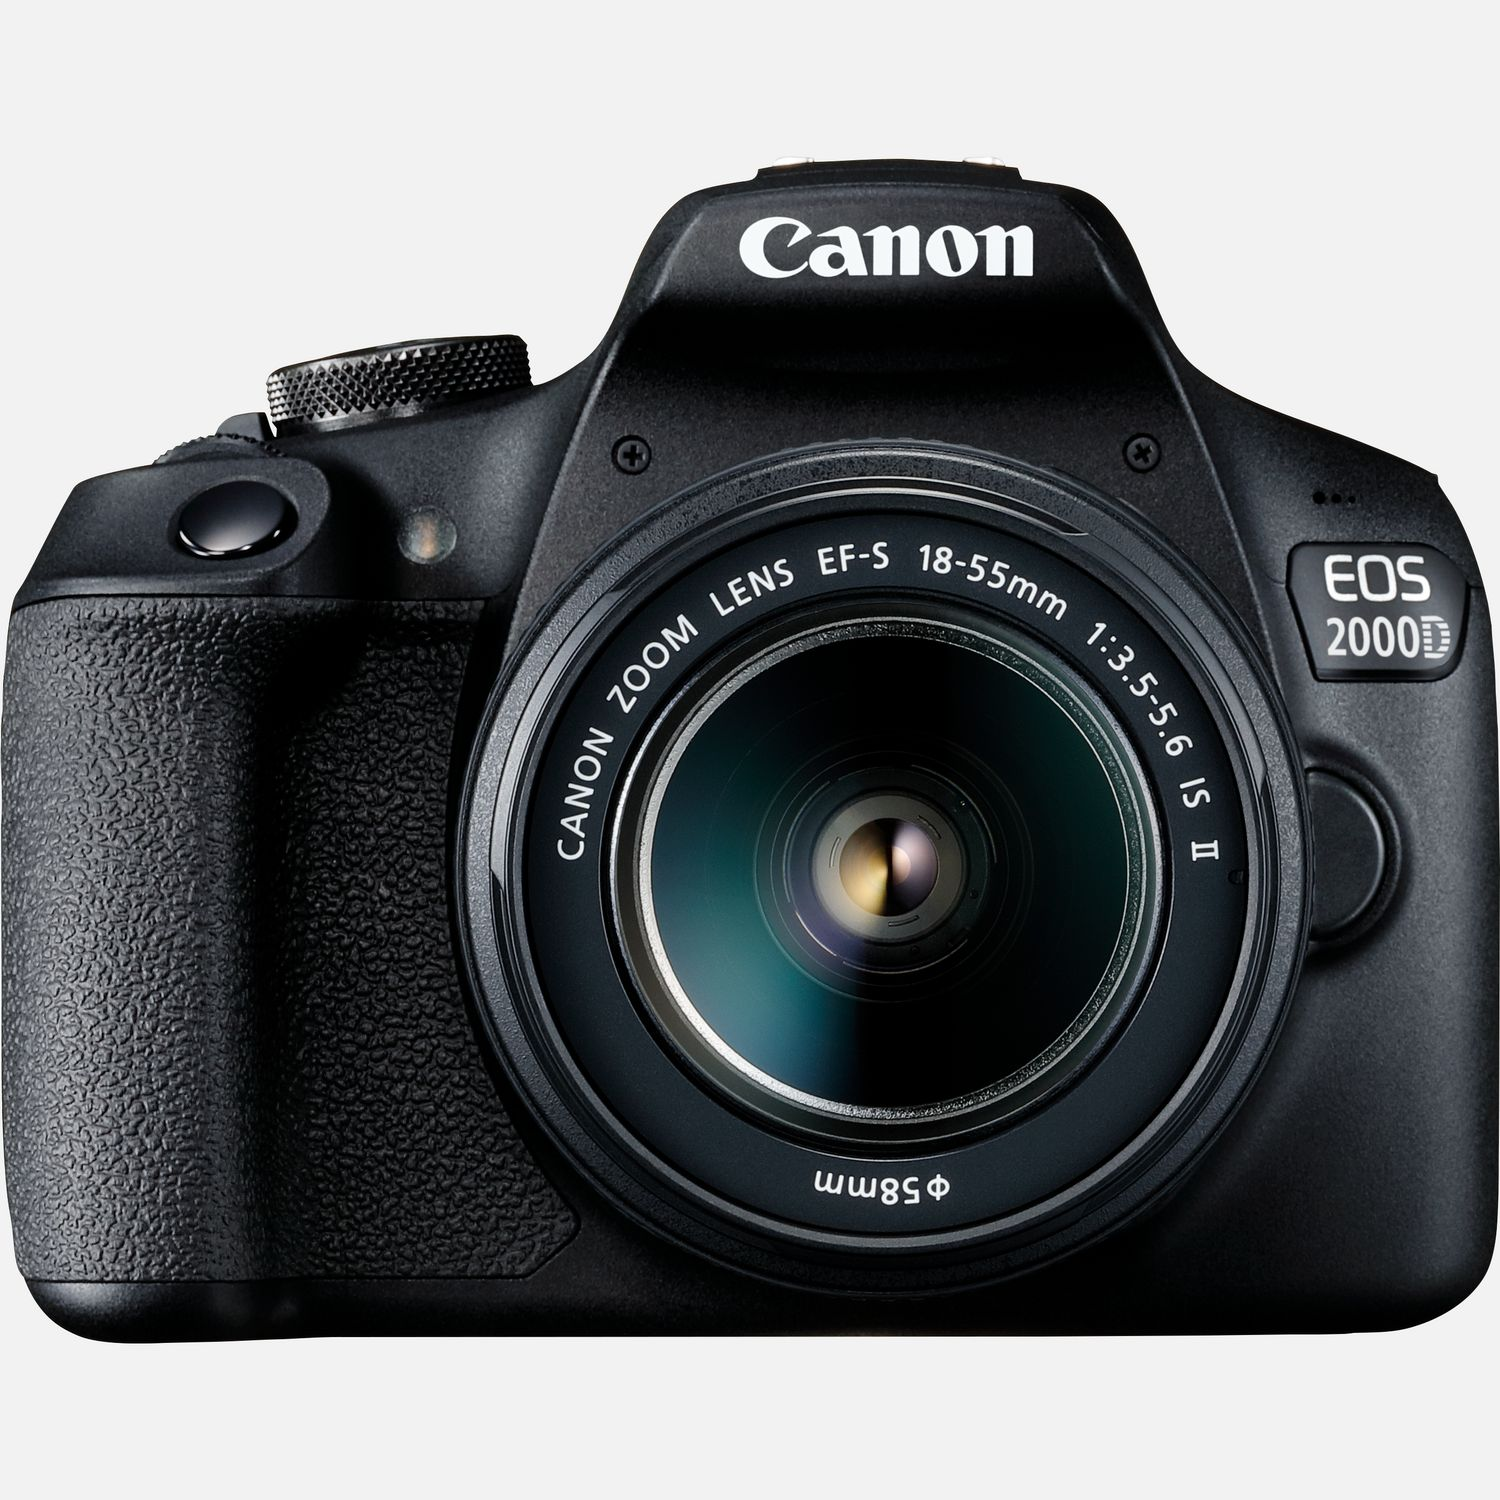 Image of Canon EOS 2000D and EF-S 18-55mm IS II Lens